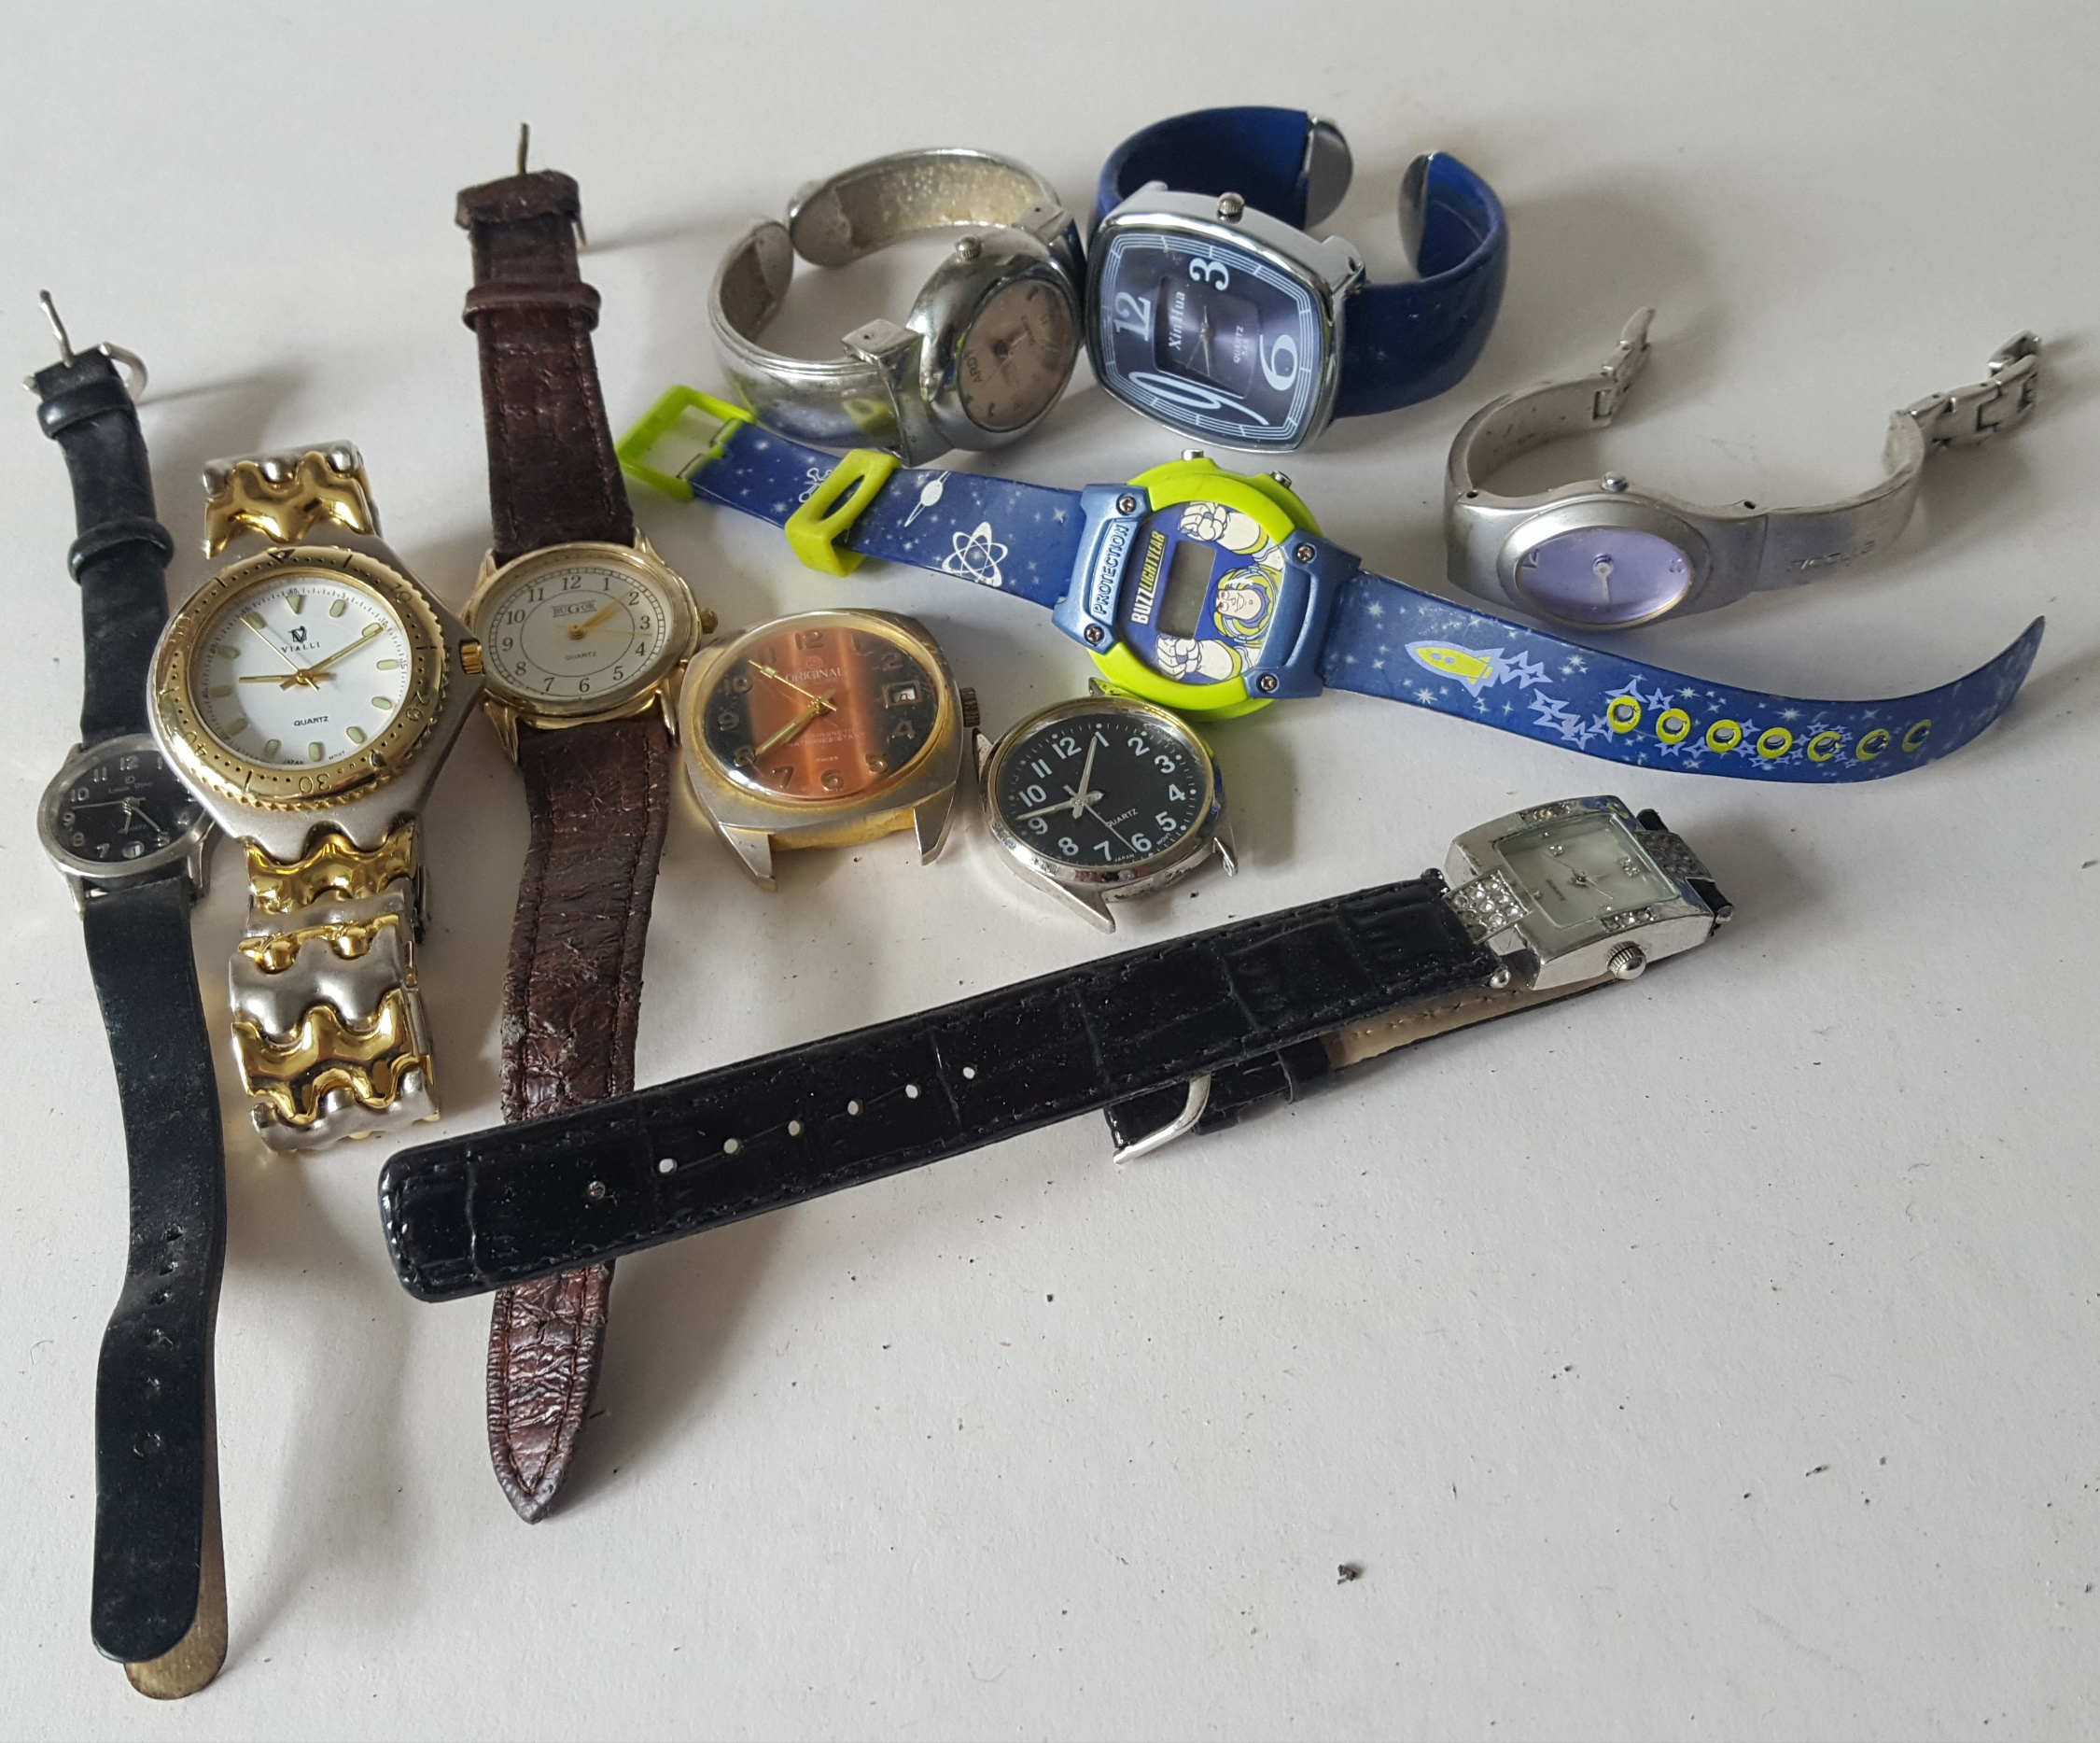 Lot 75 - Vintage Retro Parcel of 10 Assorted Wrist Watches NO RESERVE